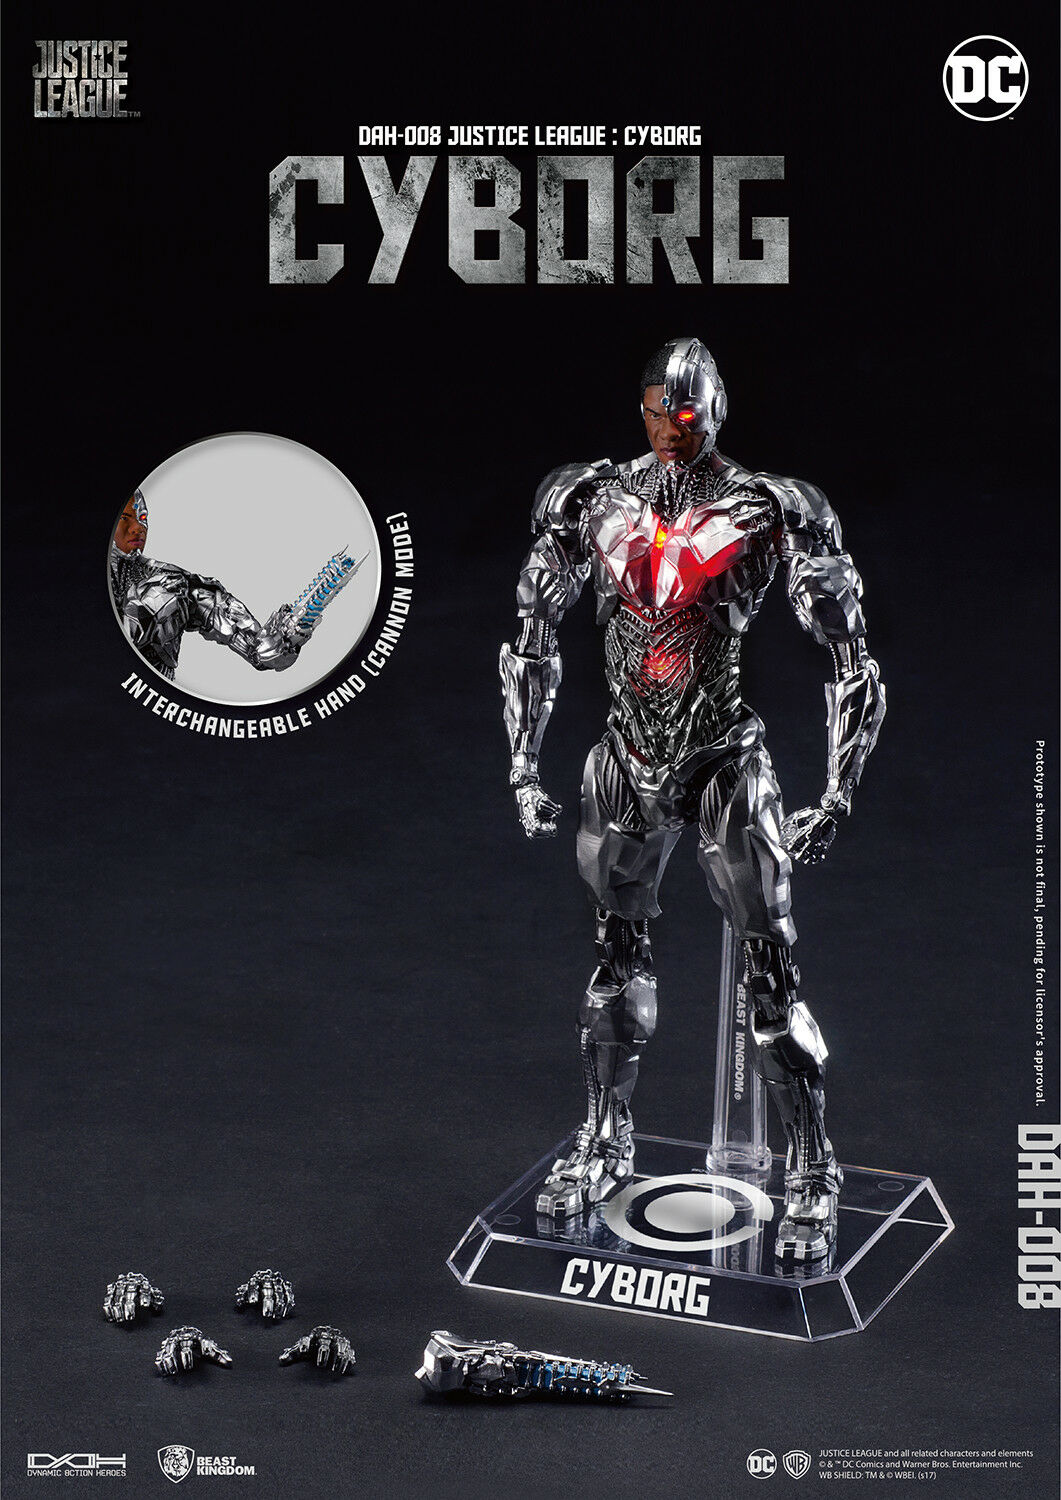 BEAST KINGDOM Justice League MOVIE DAH-008 DYNAMIC 8-CTION CYBORG  Figure NEW